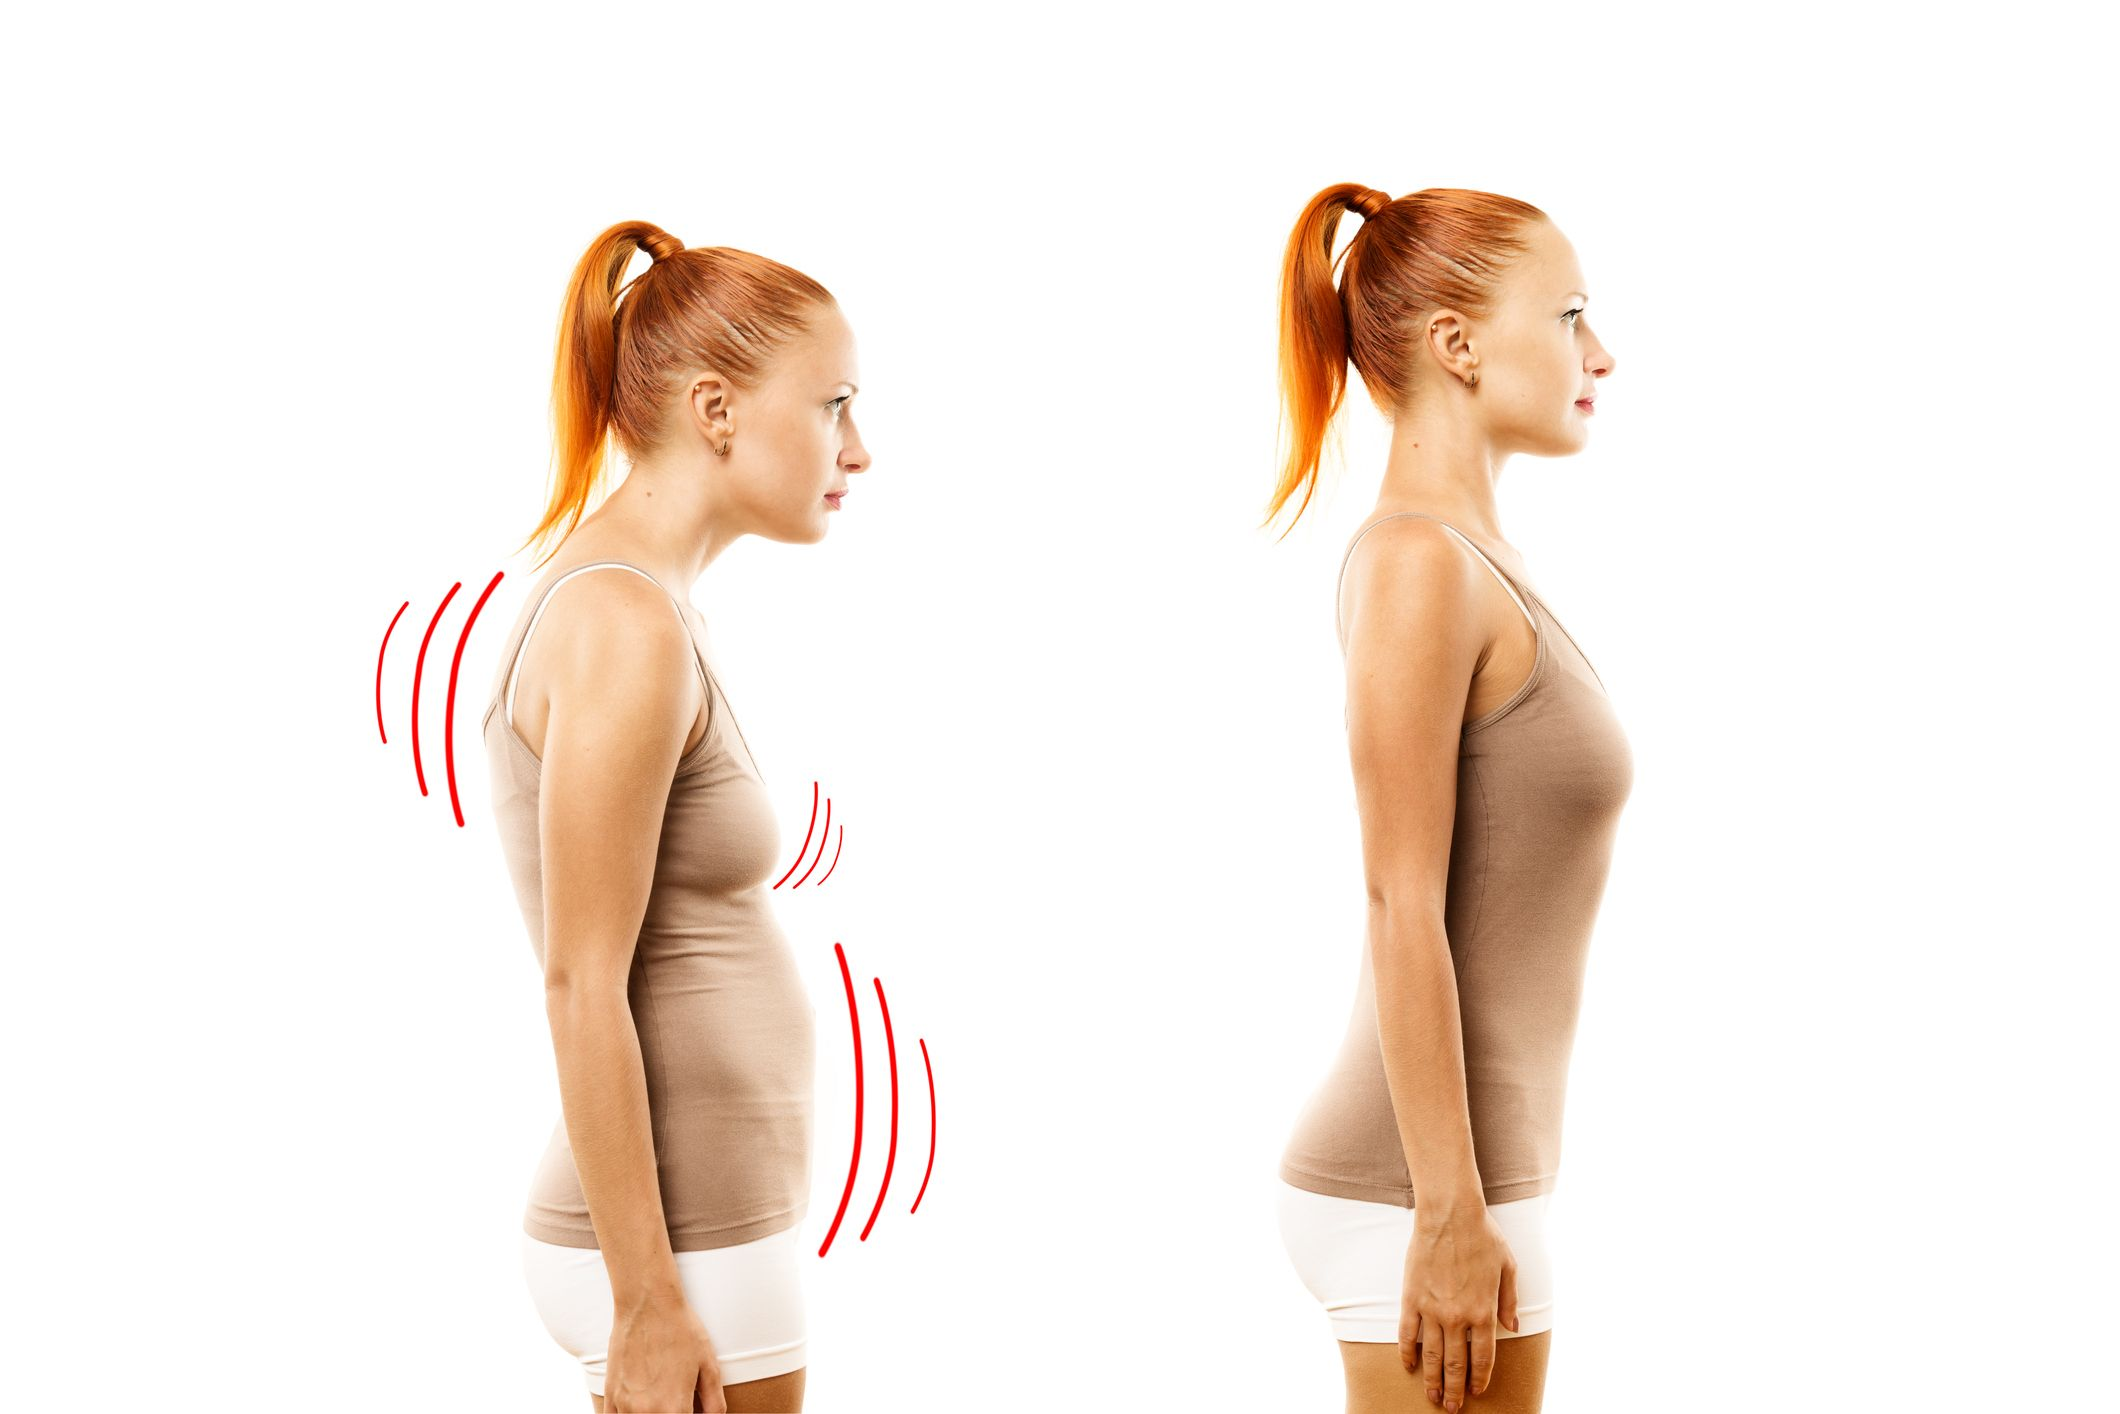 Exercises to Correct One Shoulder Higher Than the Other